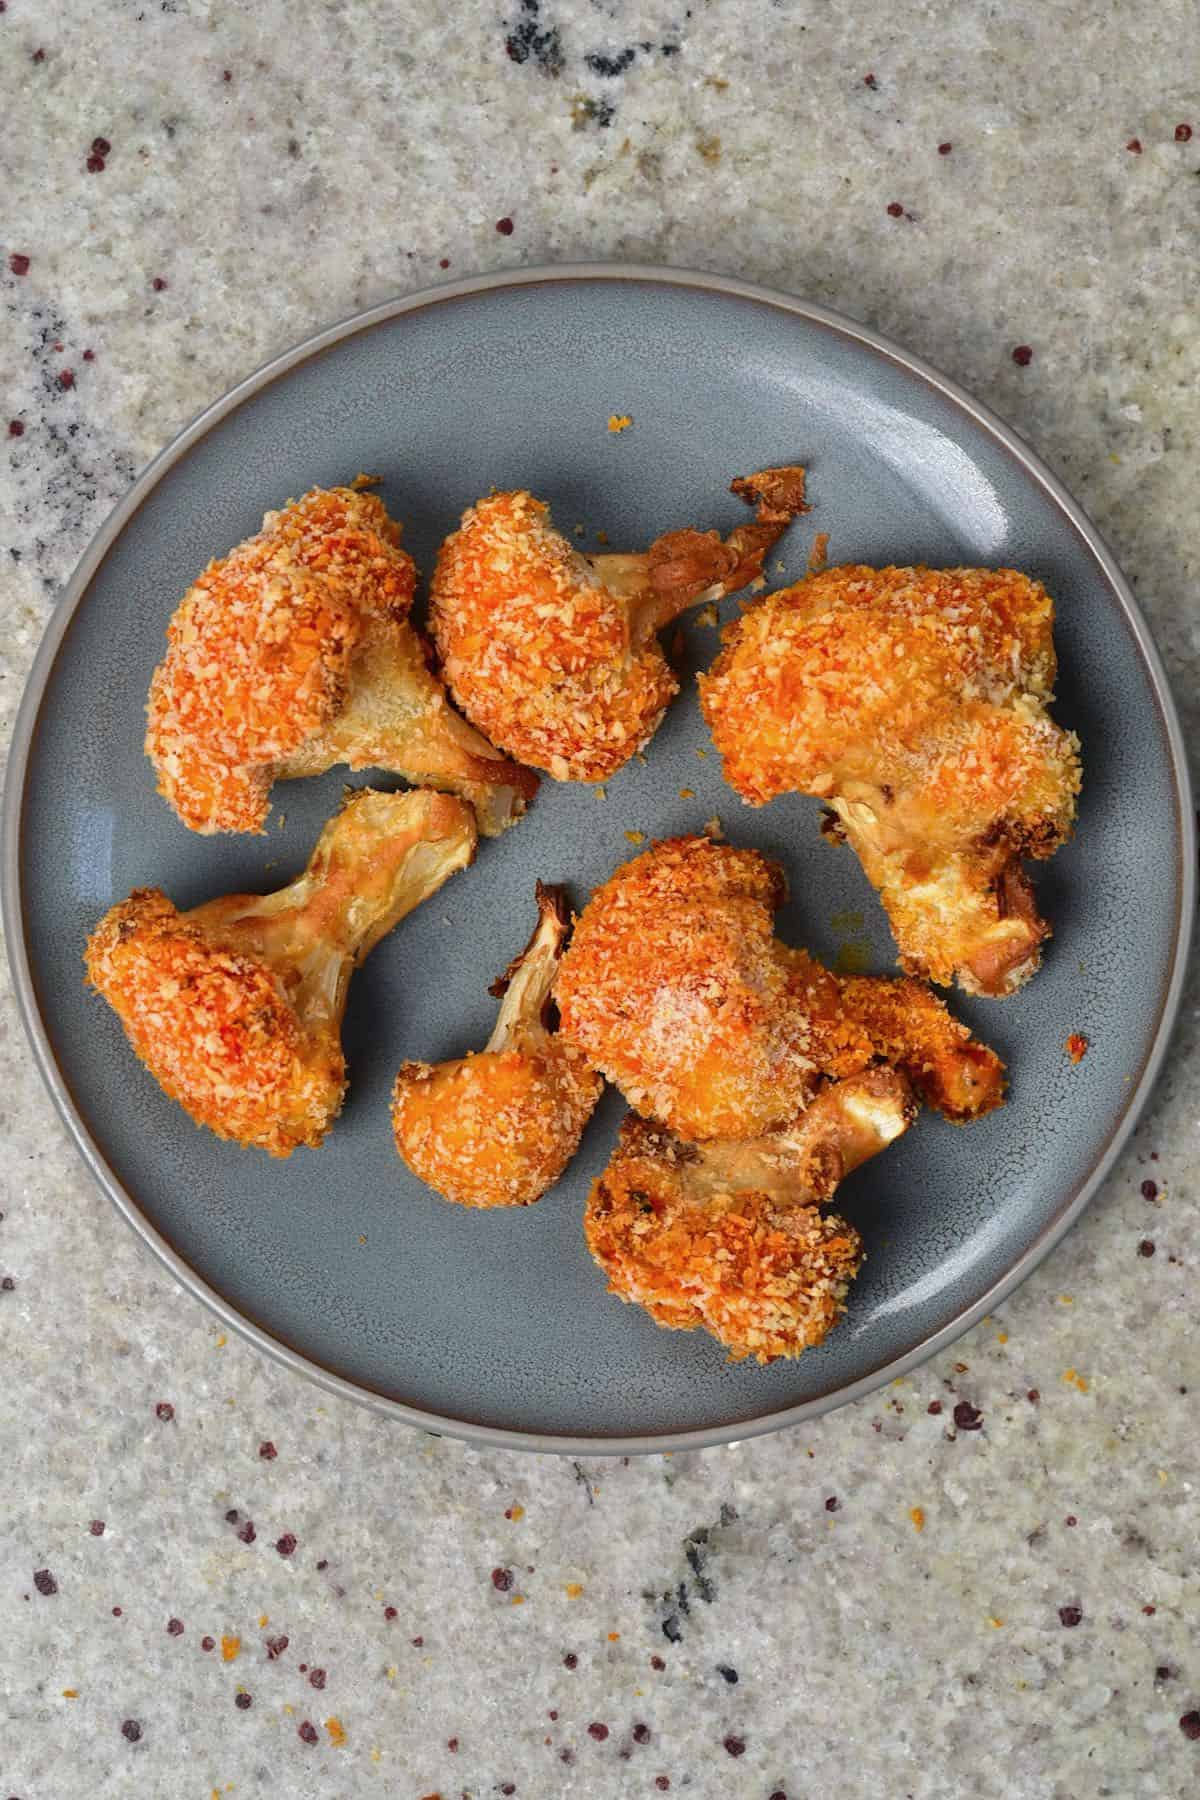 A plate with 7 baked breaded cauliflower wings